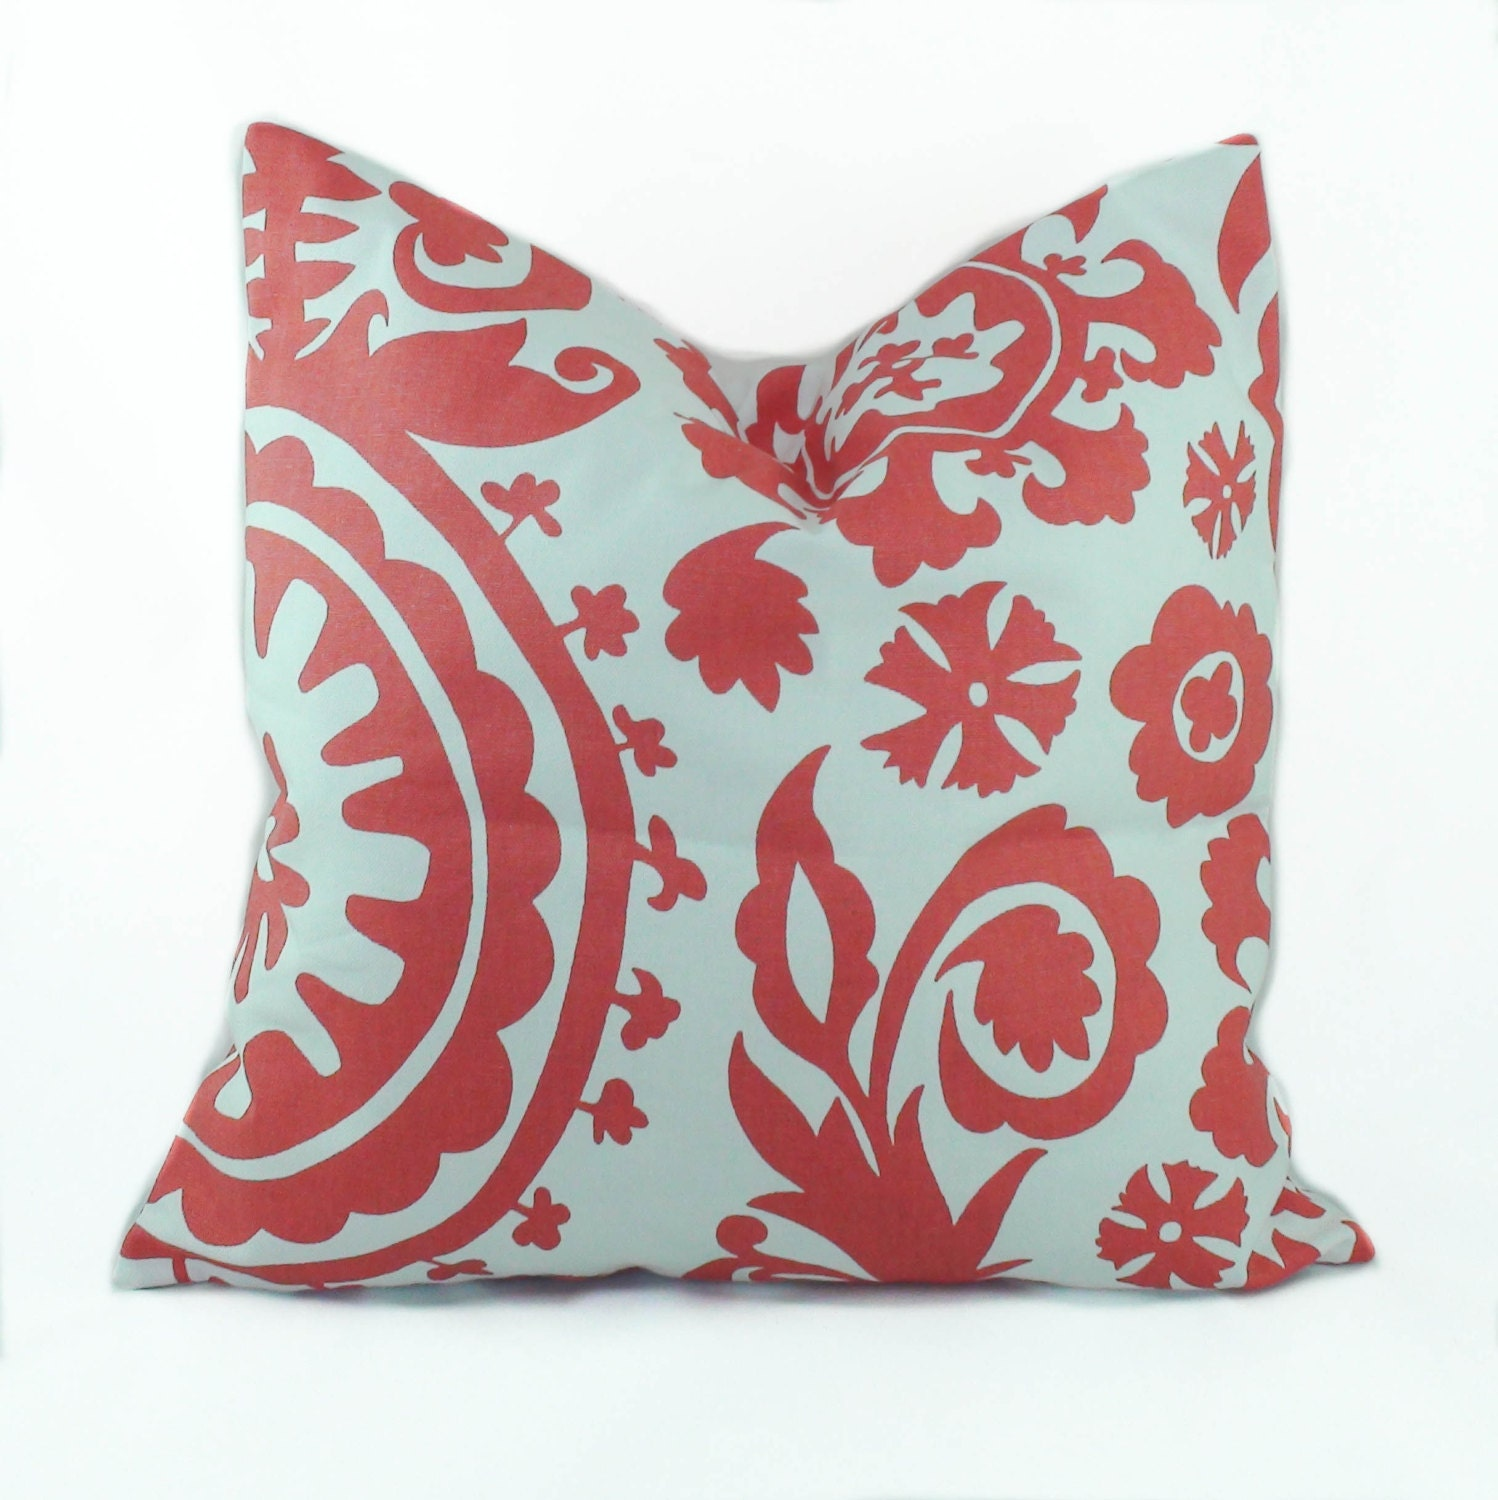 Throw Pillows With Coral : Coral pillow covers 18x18 Decorative pillows for by PillowCorner